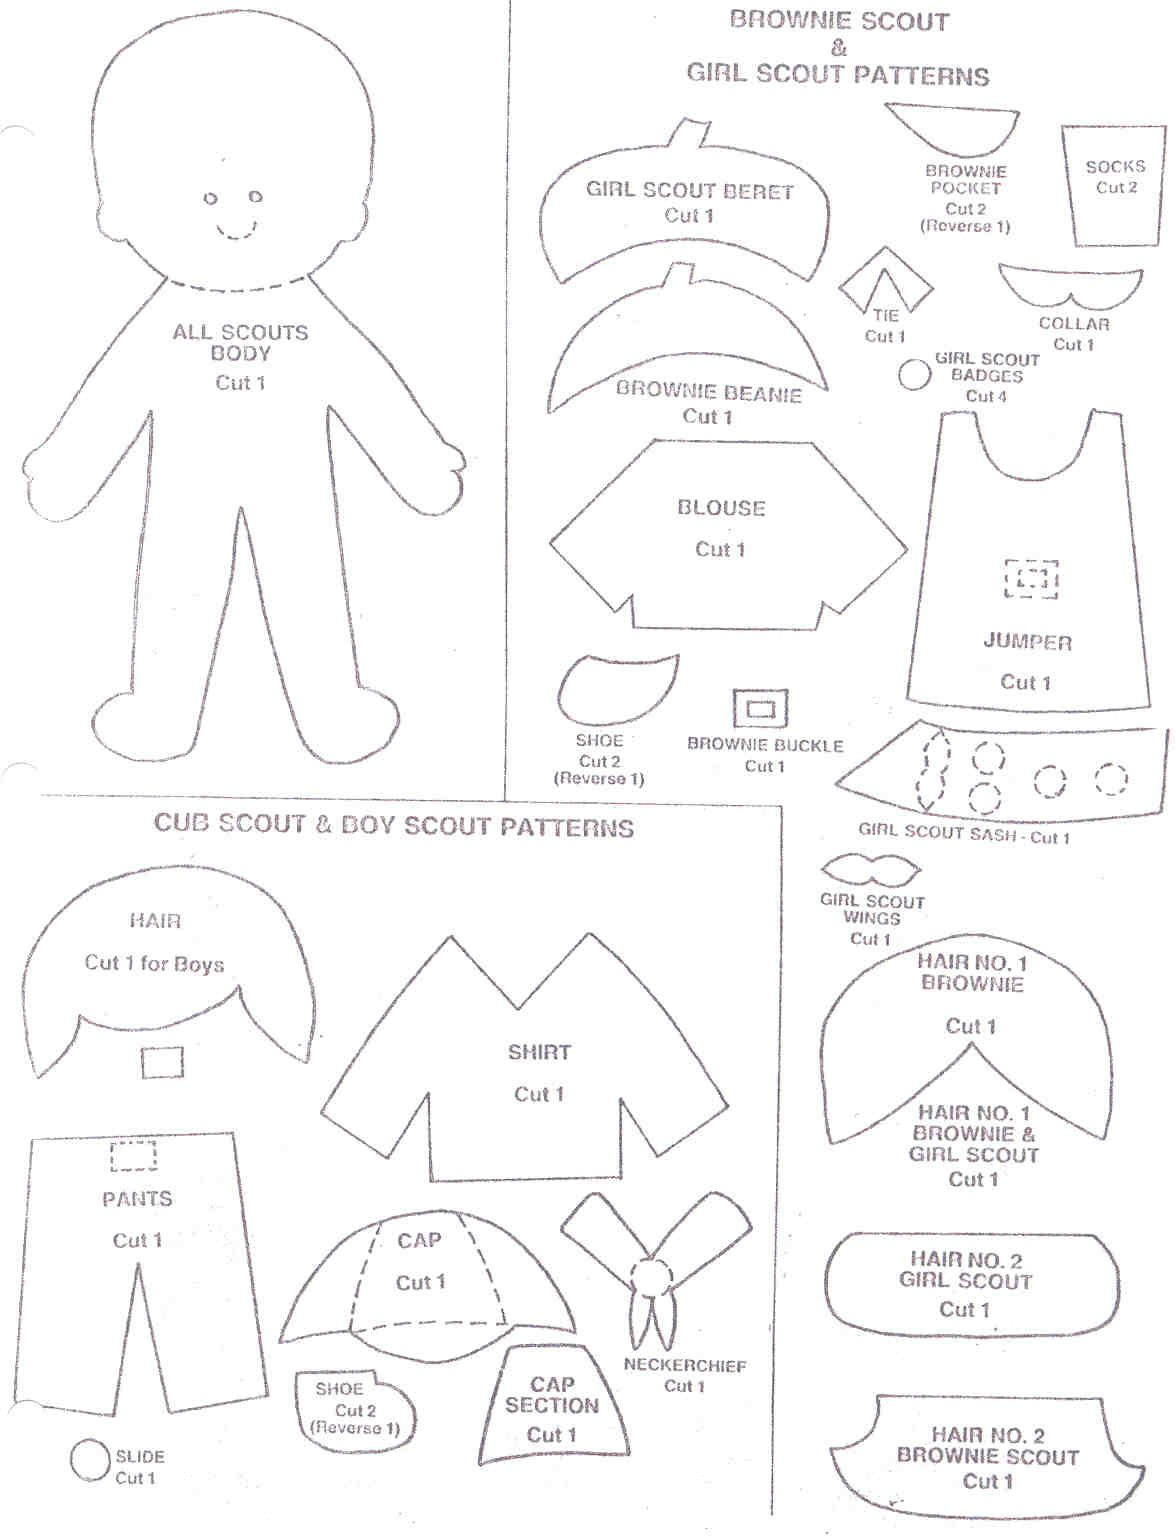 girl scout coloring pages | Brownie girl scouts coloring pages ...